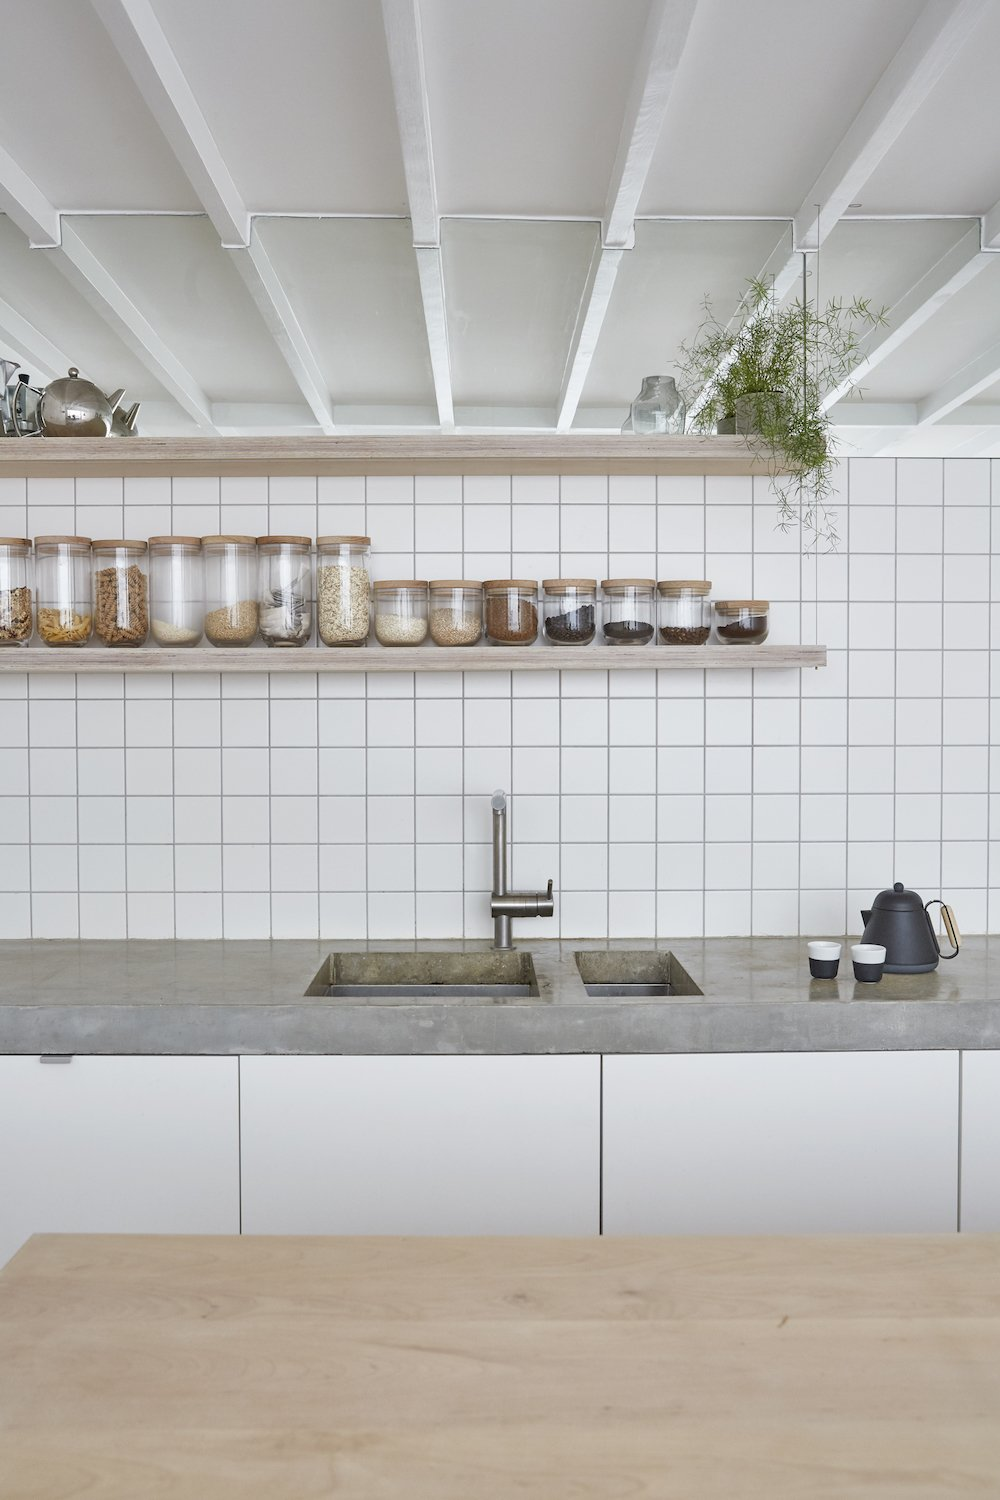 Kitchen, Wood Counter, Wood Cabinet, Drop In Sink, White Cabinet, Concrete Counter, Mirror Backsplashe, and Ceramic Tile Backsplashe Bespoke joinery, tiled finishes, concrete tops and high-level mirrors to the kitchen  Hackney Mews House by HUTCH design